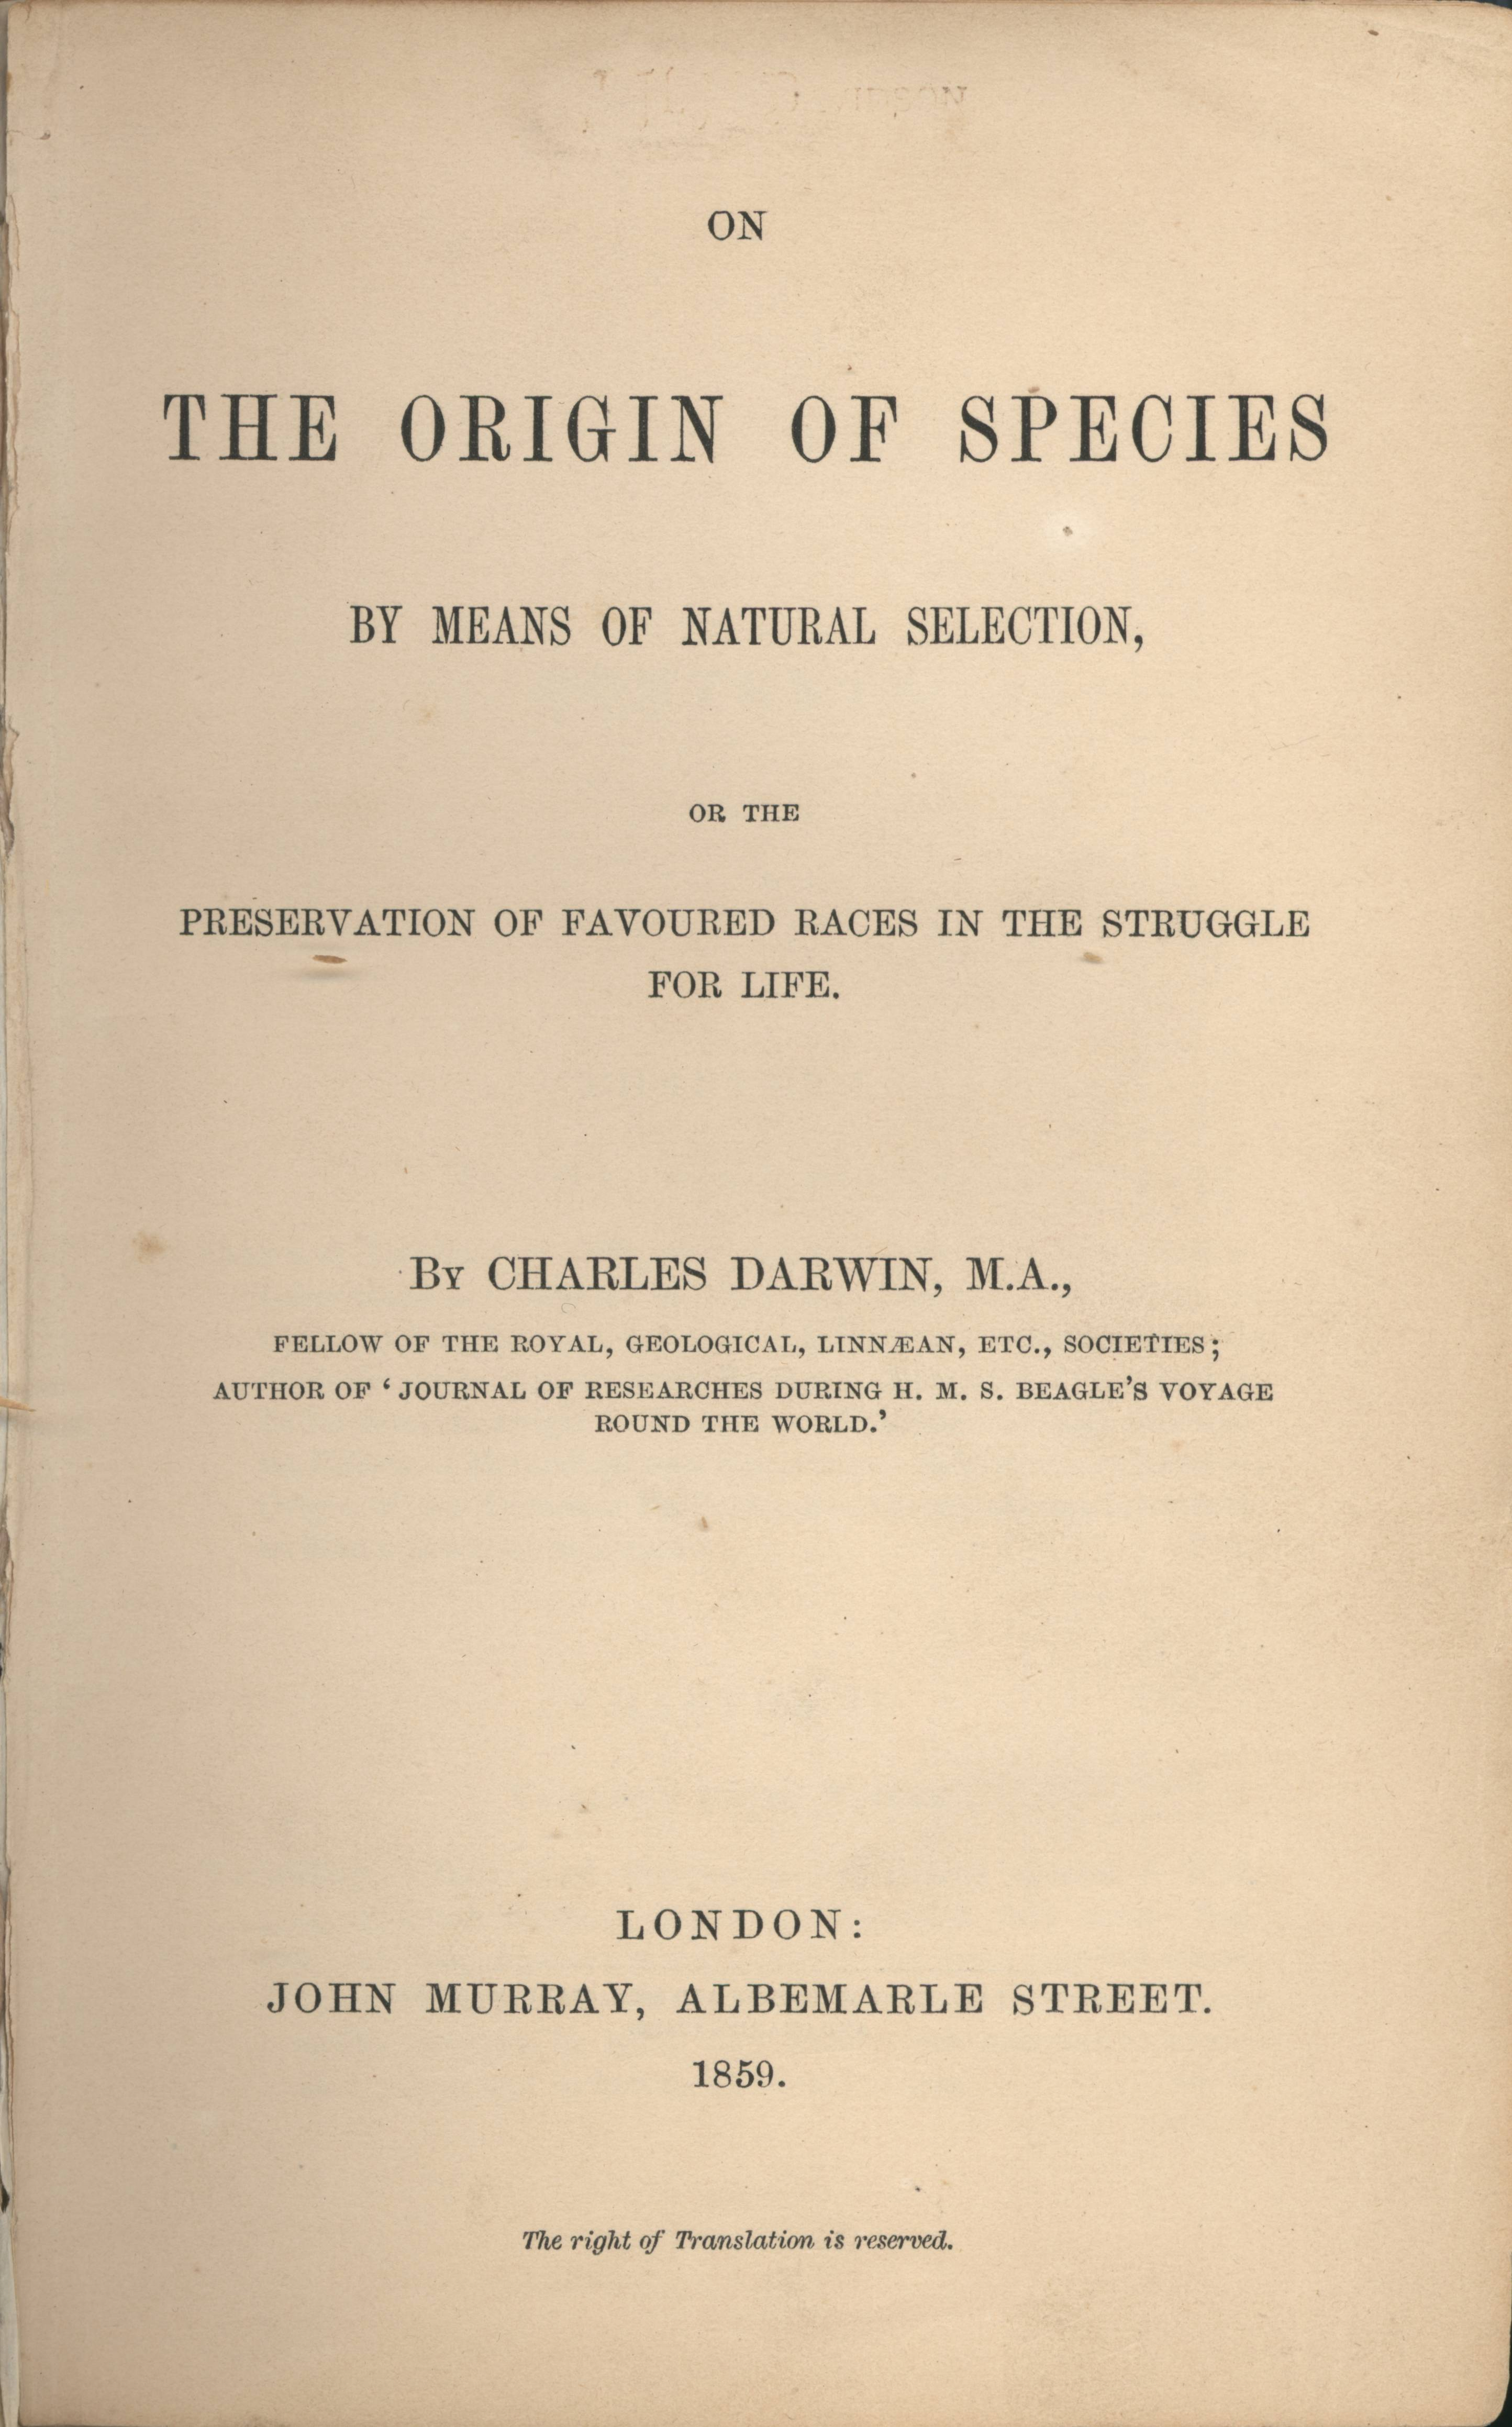 Book trade bookselling timeline historyofinformation charles darwins on the origin of species by means of natural selection november 24 1859 fandeluxe Images